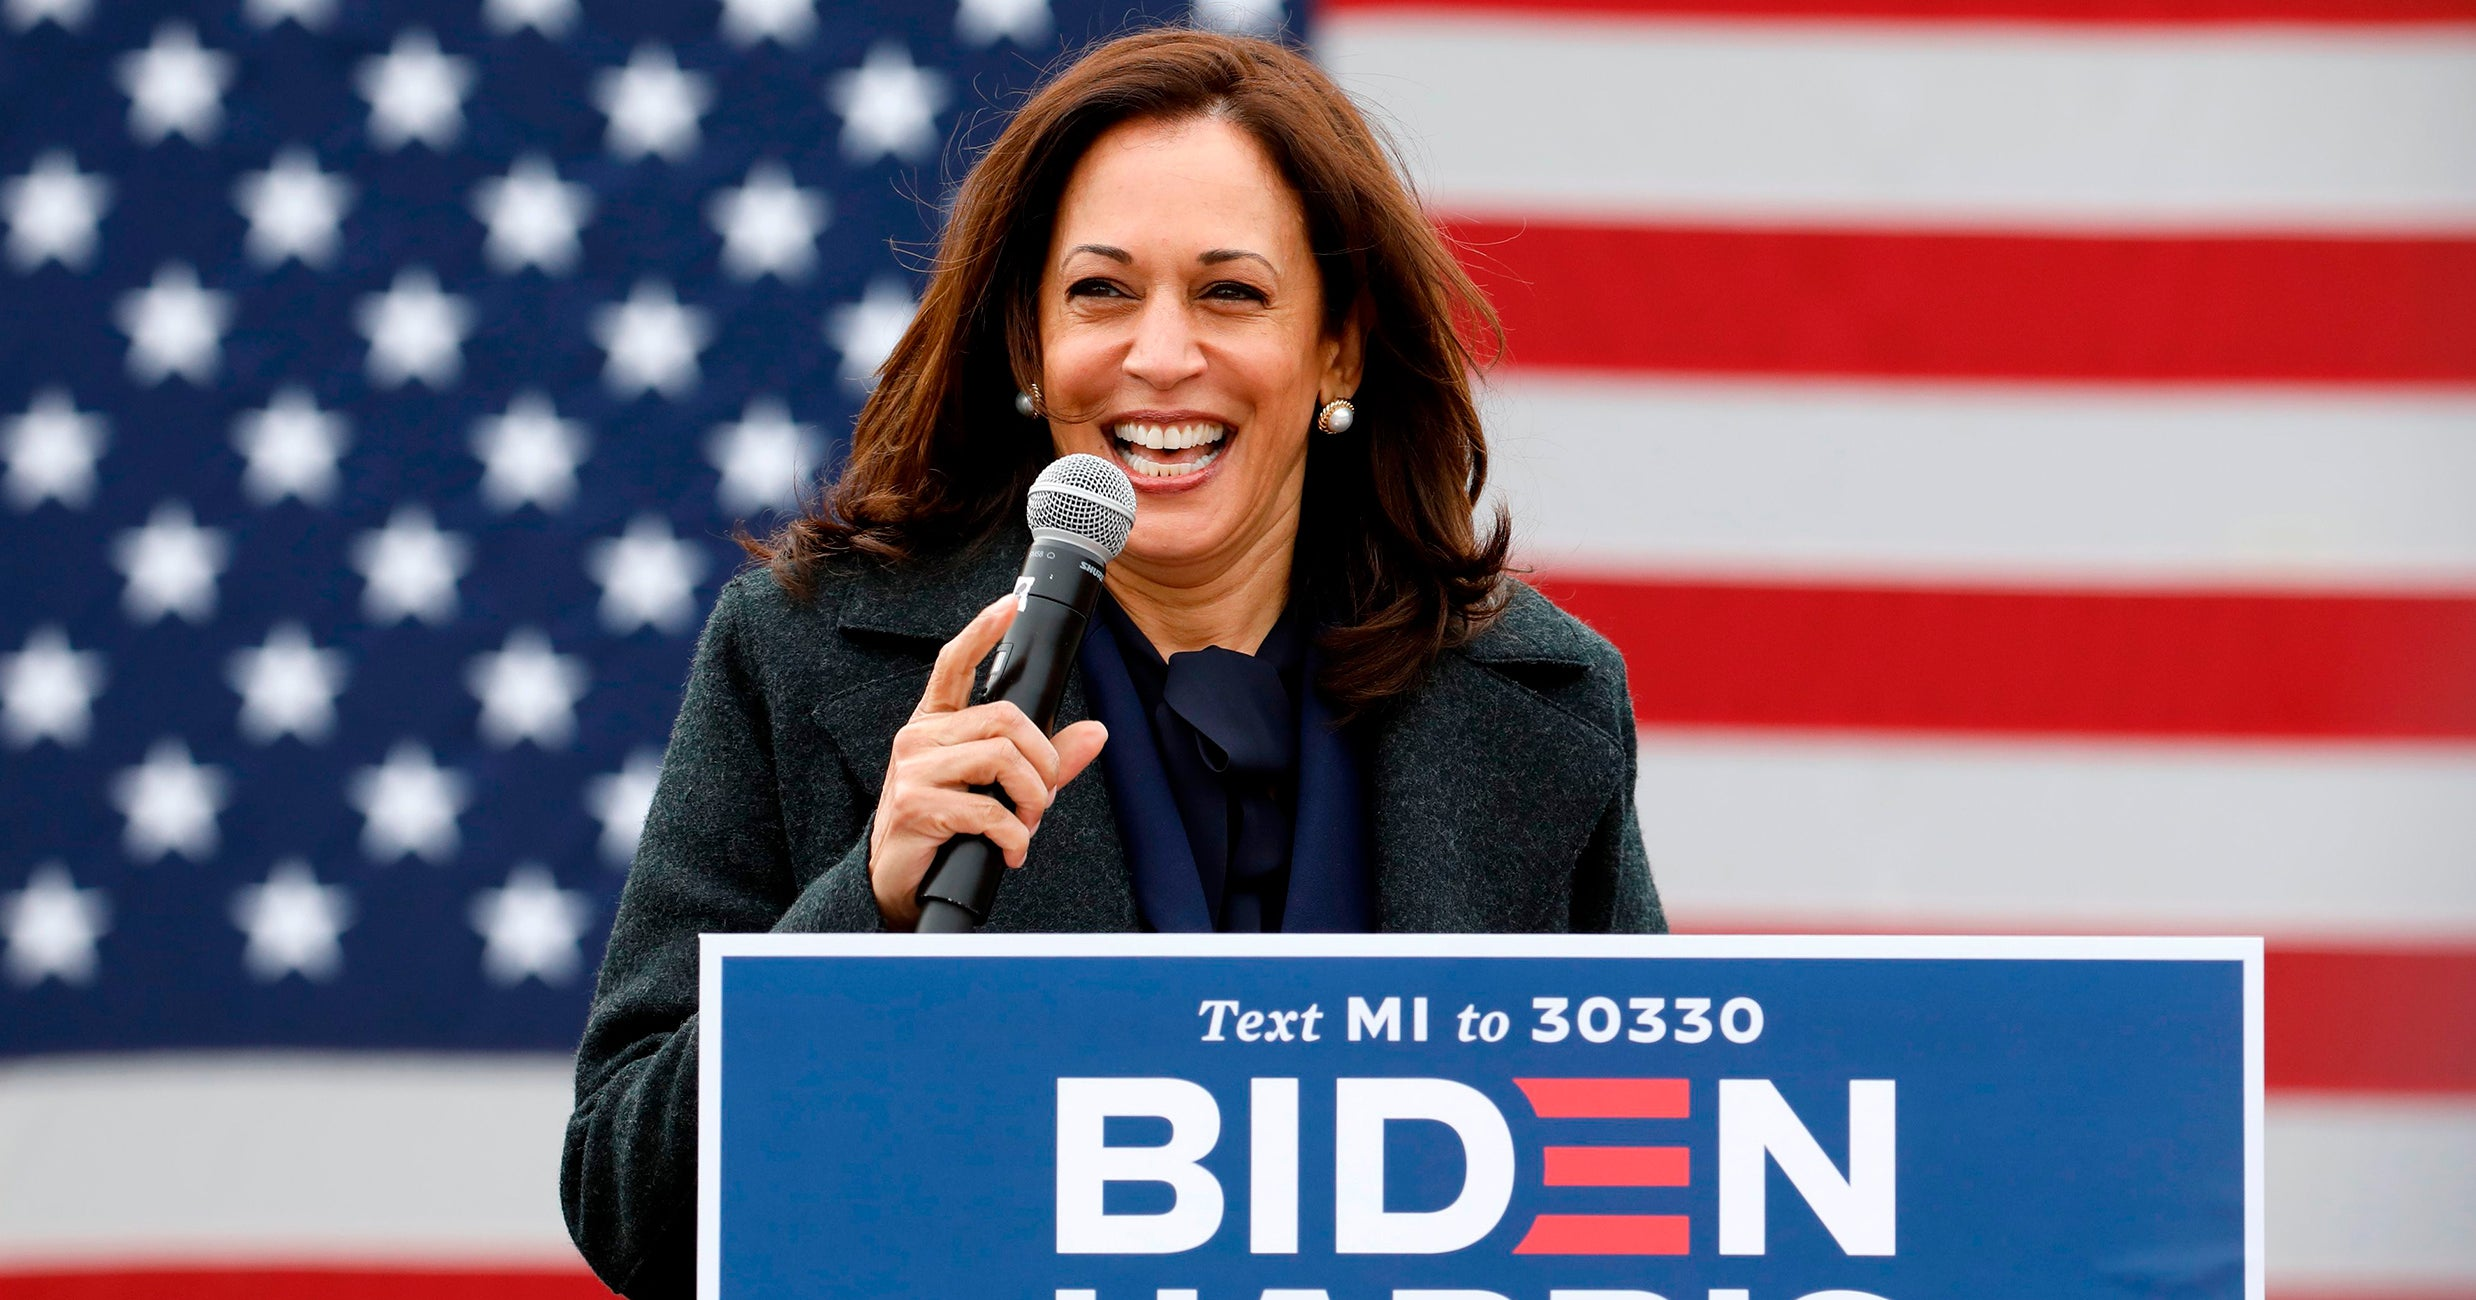 Why Is Kamala Harris Being Criticized For Dancing? Racism.